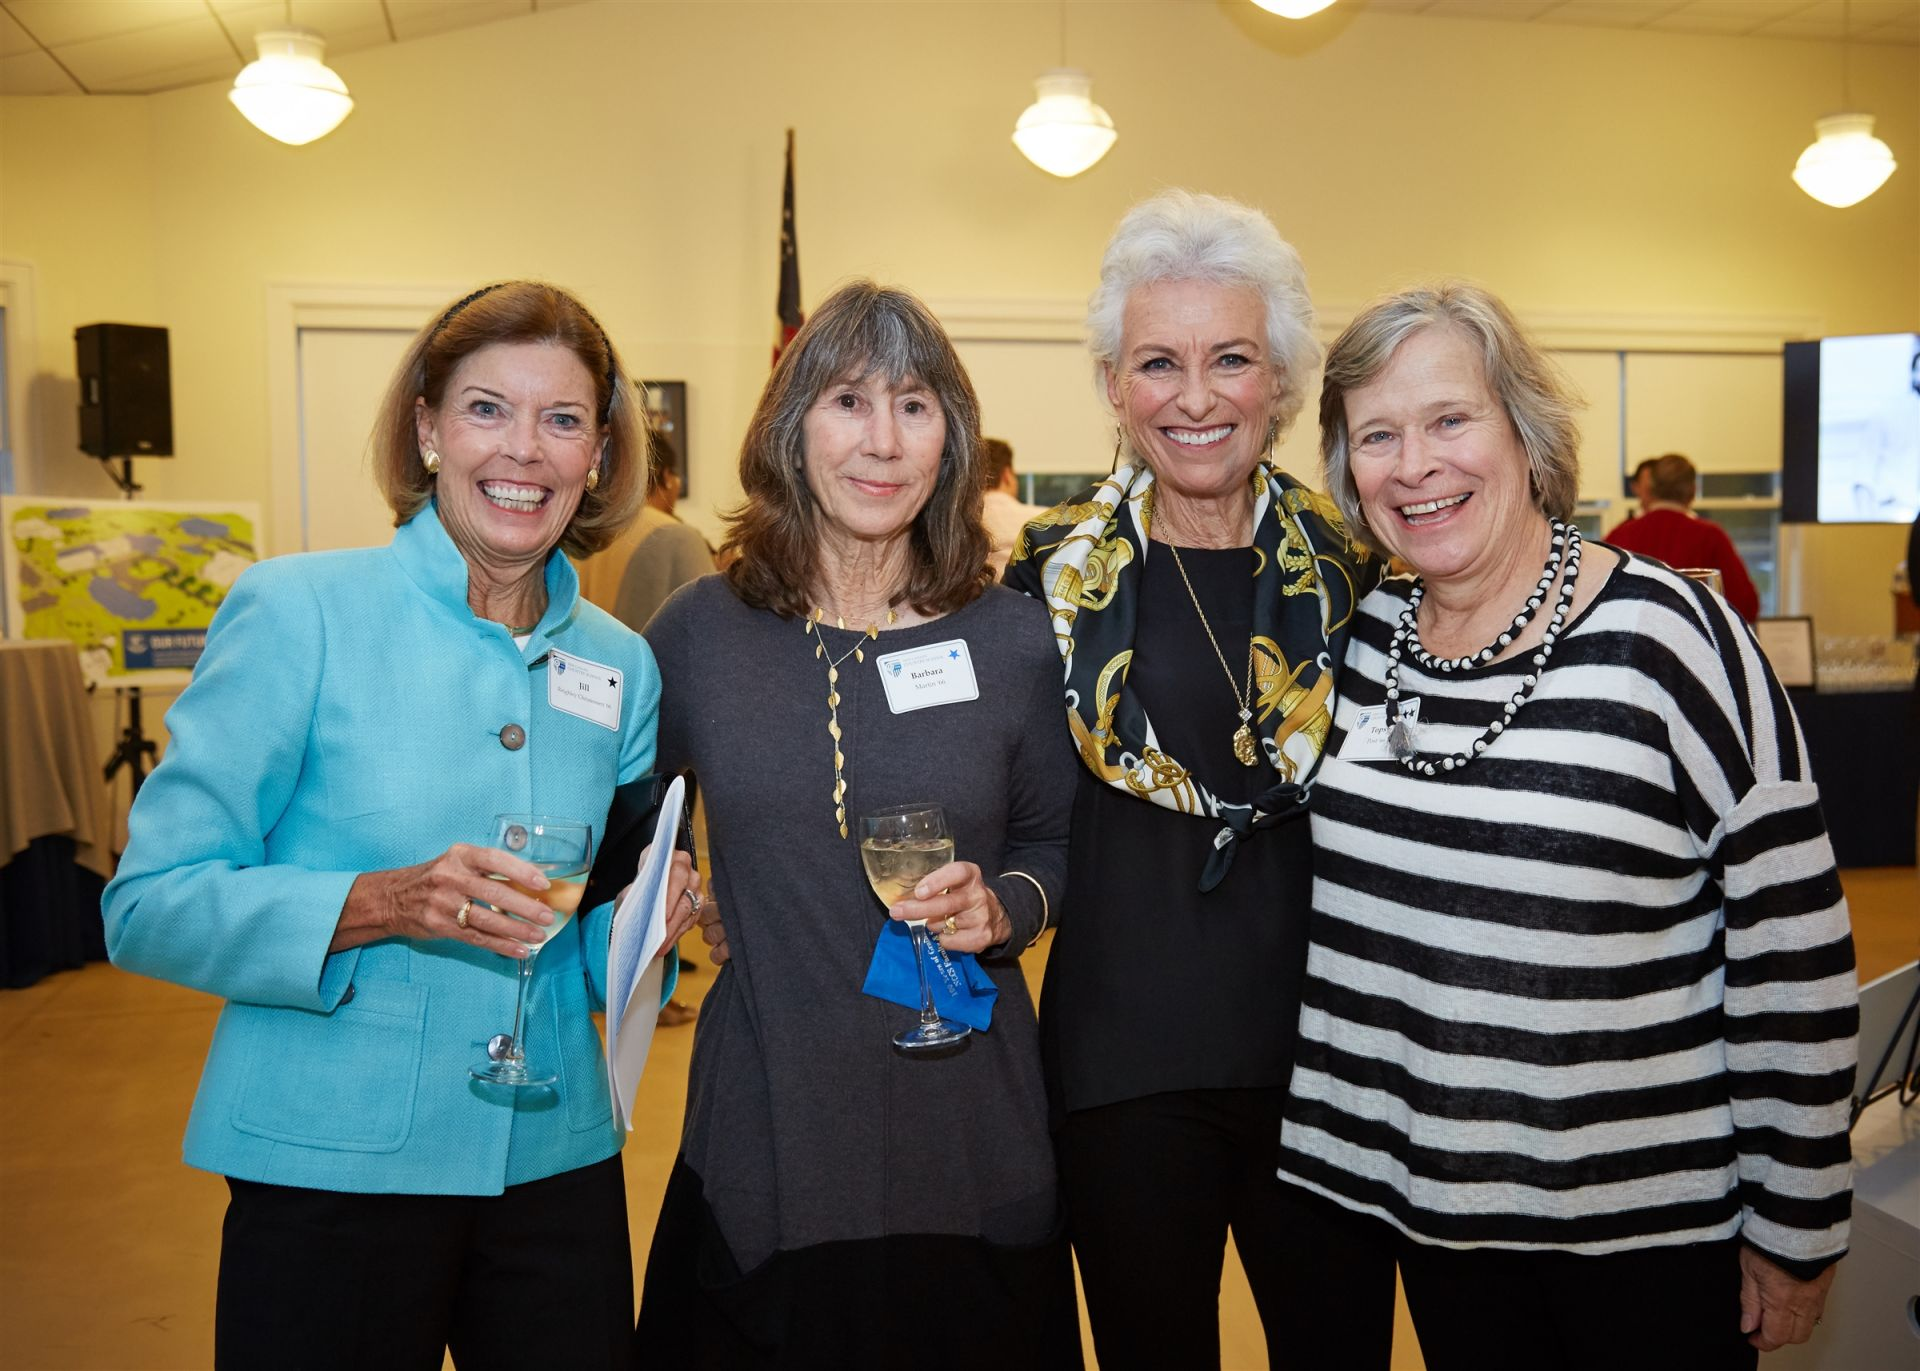 Centennial Celebration Weekend: Jill Reighley Christensen '66, Barbara Martin '66, Andrea Marschalk Scheyhing '66, Topsy Post '66